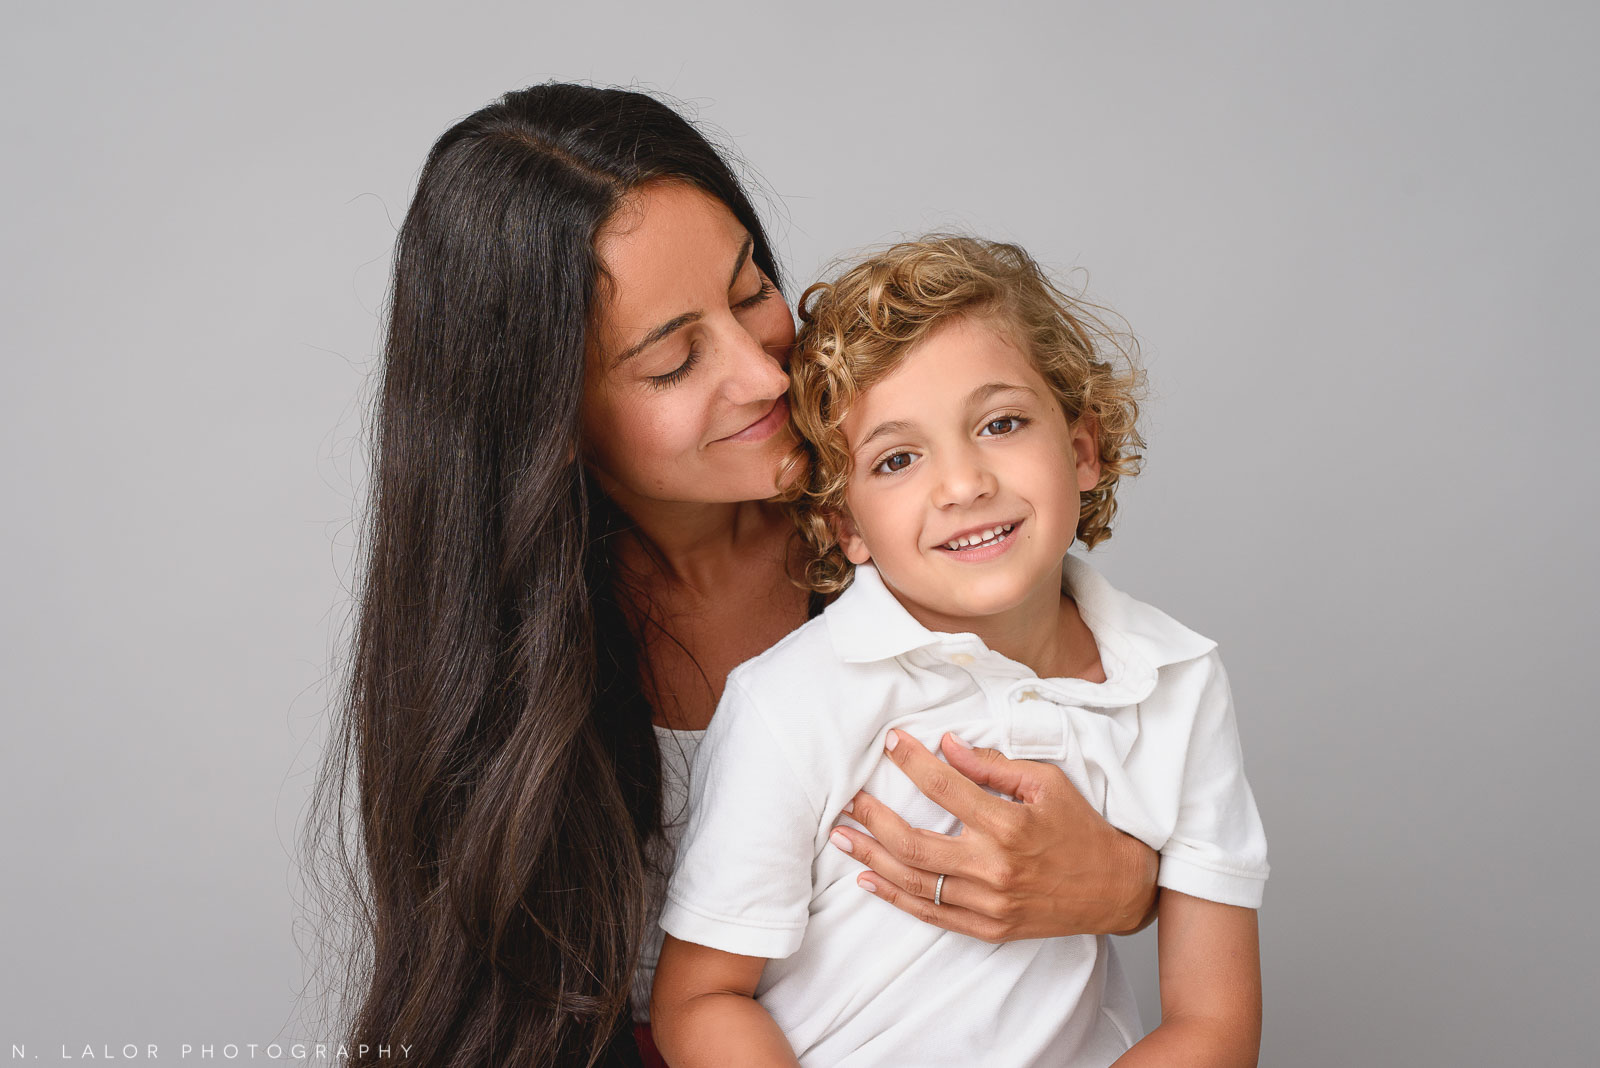 Mother and son. Family photo session by N. Lalor Photography in Greenwich, CT.